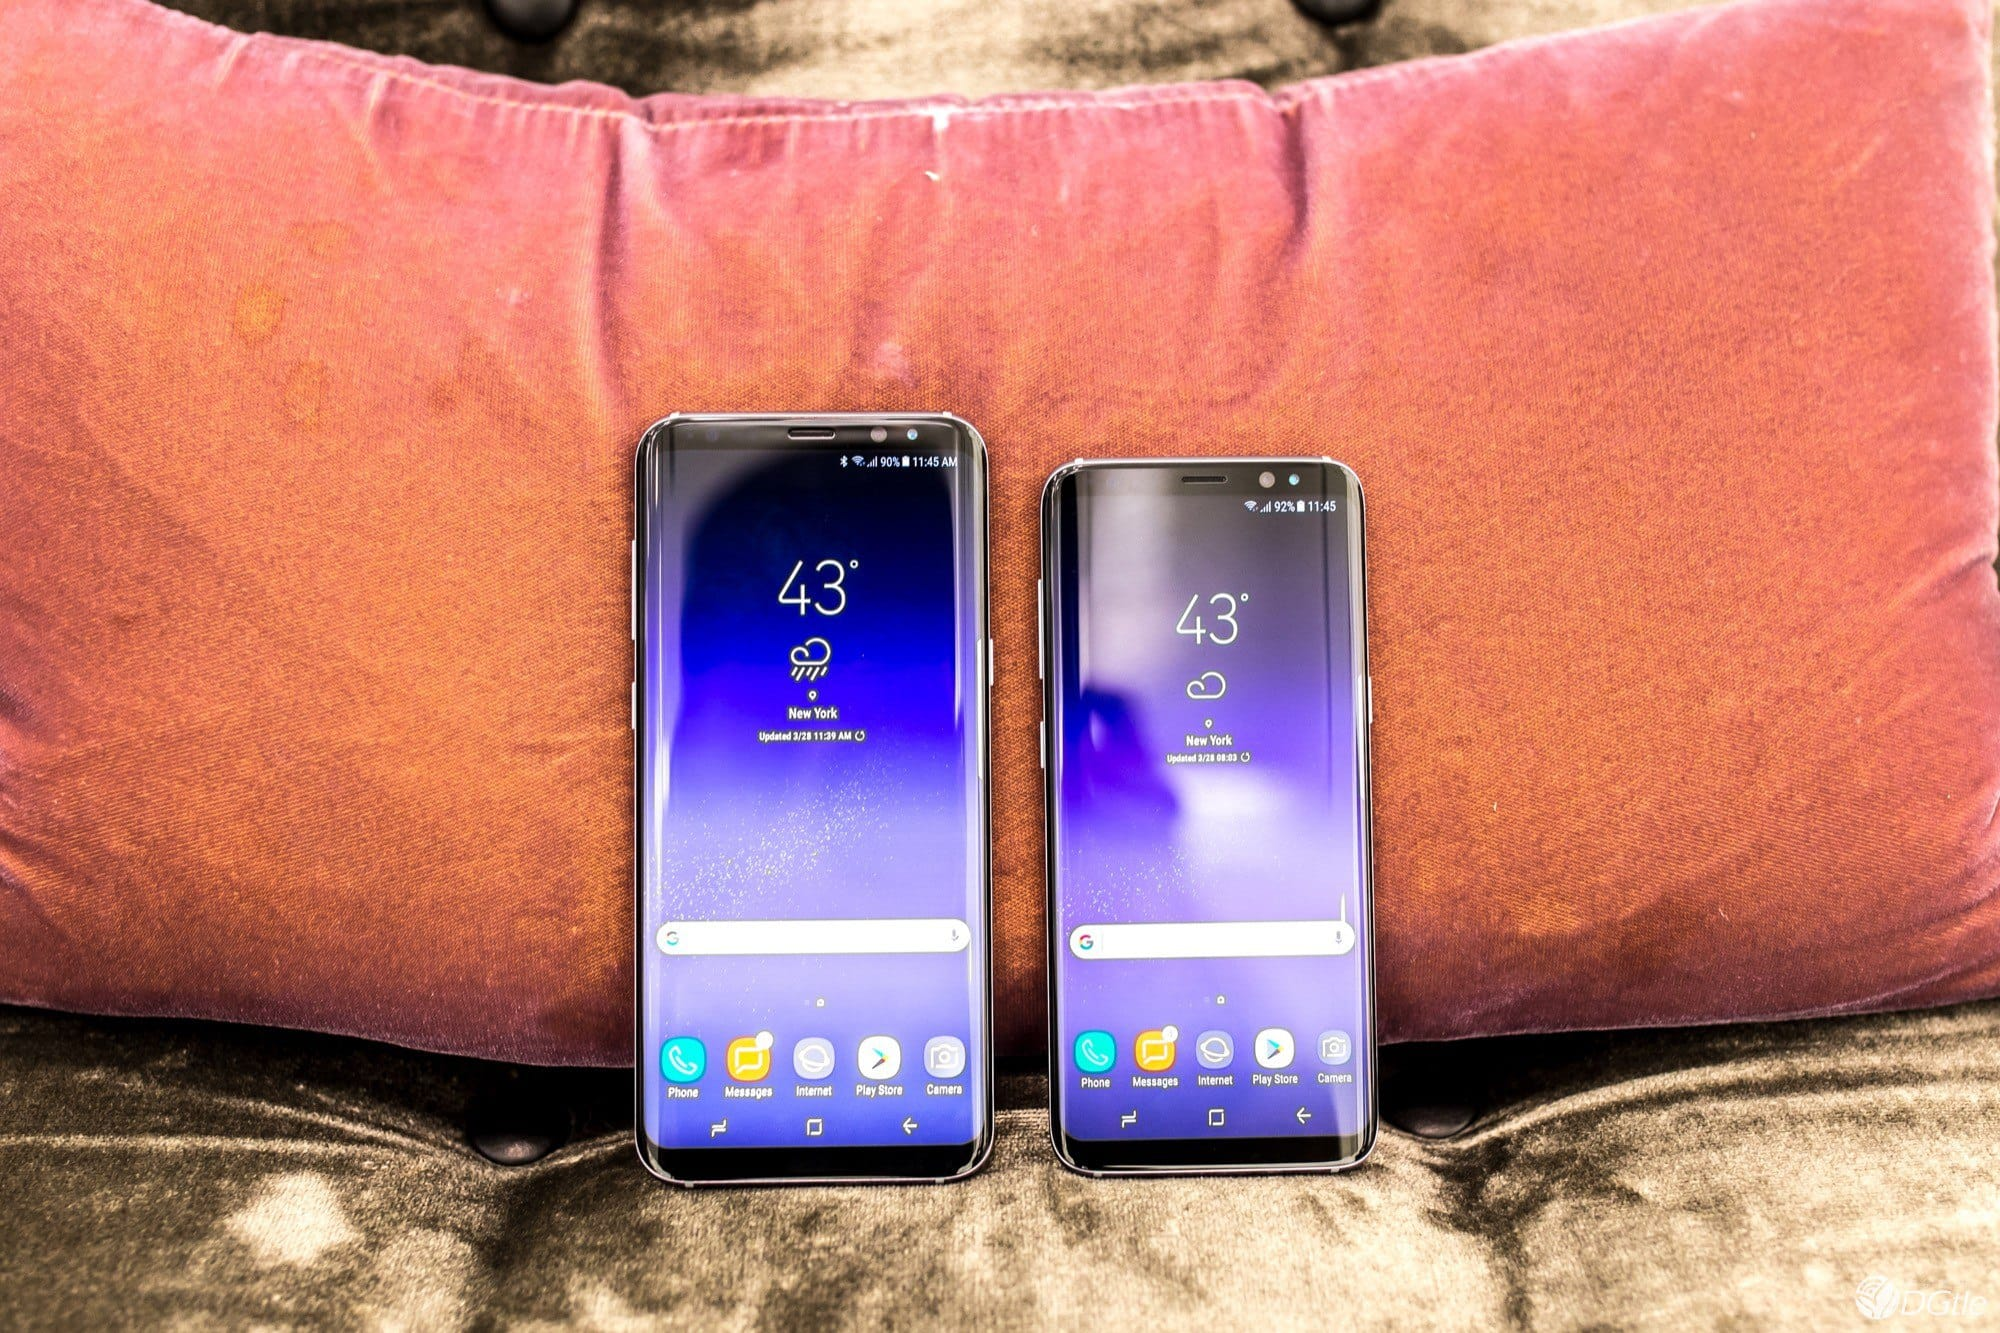 Samsung Galaxy S8 Galaxy S8+ Photo review 9